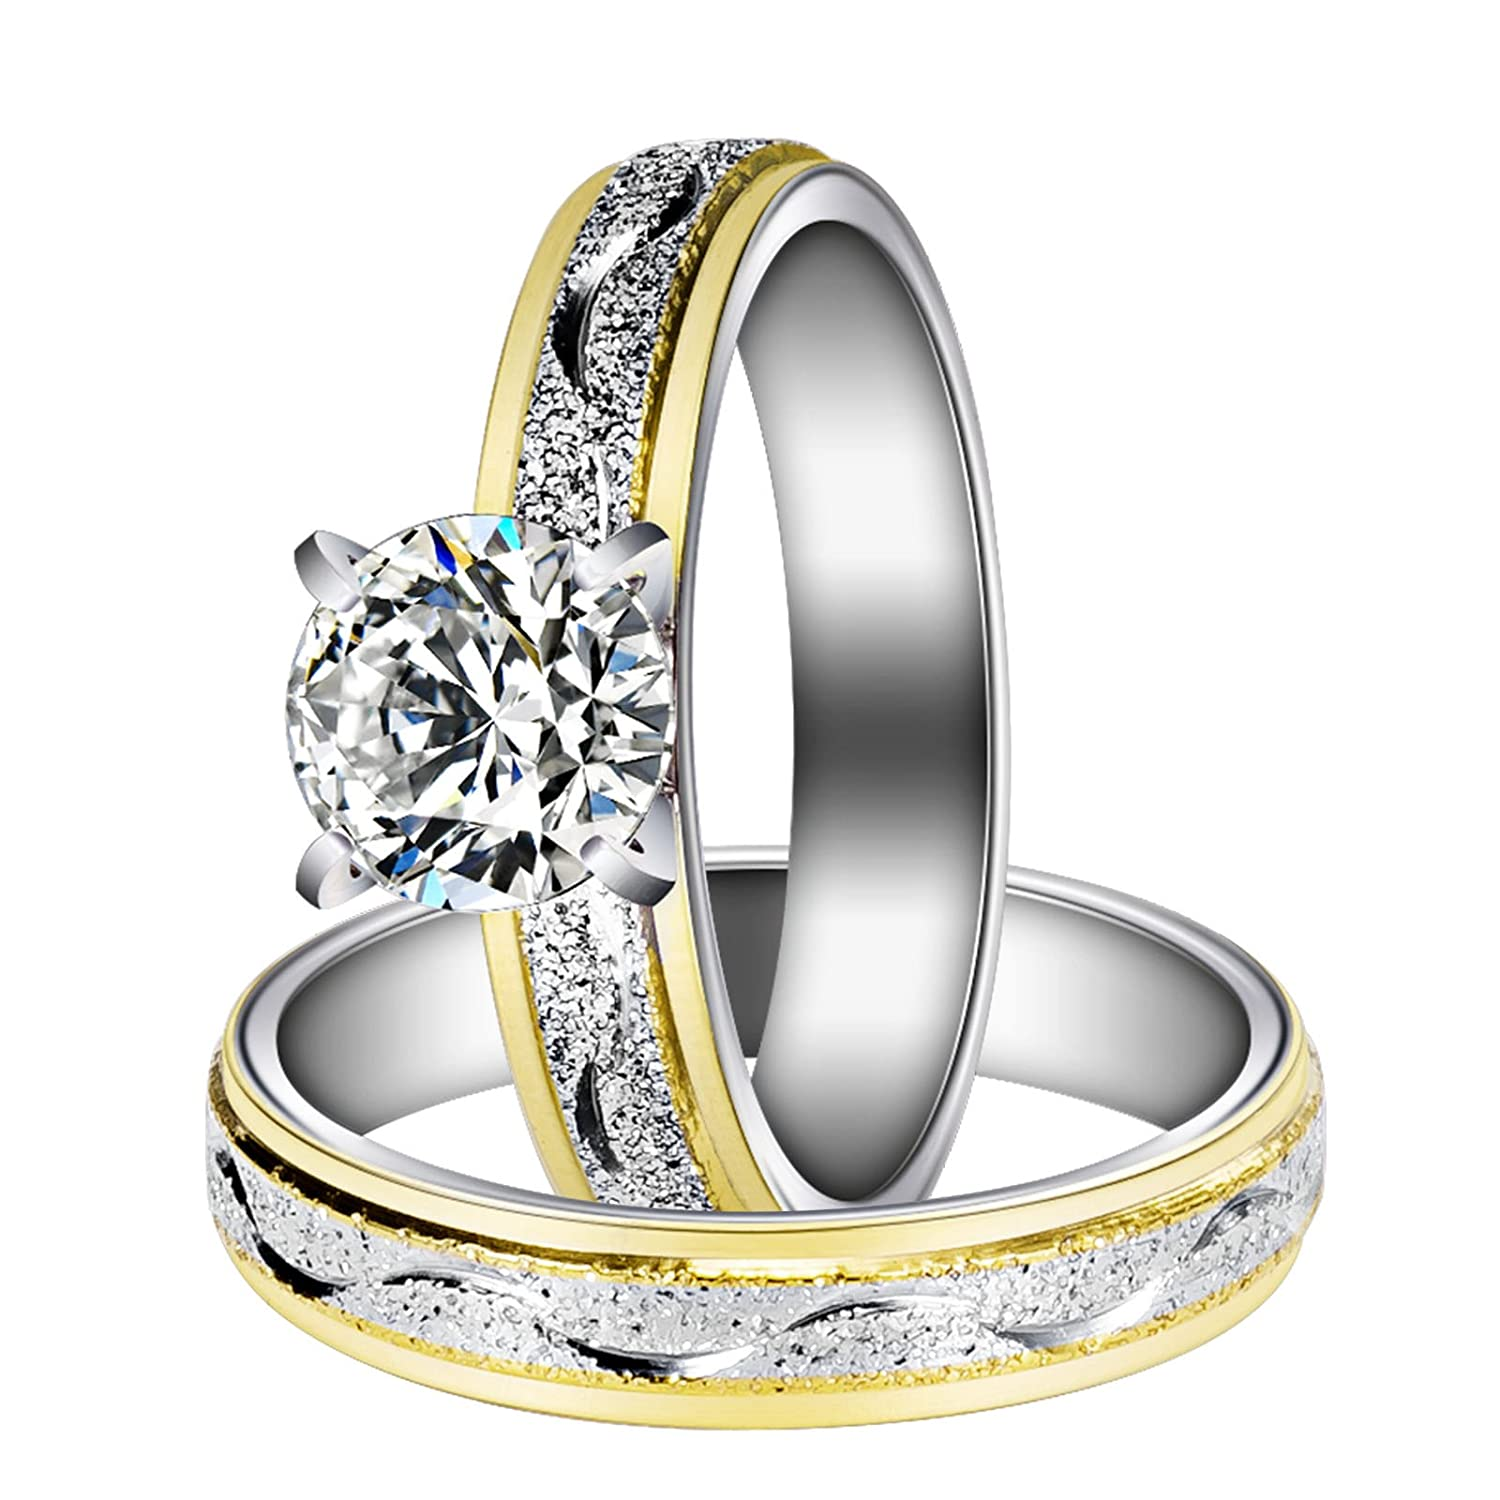 Herinos Women Engagement Rings Set, Stainless Steel Gold Plated Cubic Zirconia Promise Wedding Band Size 6-9 RI016